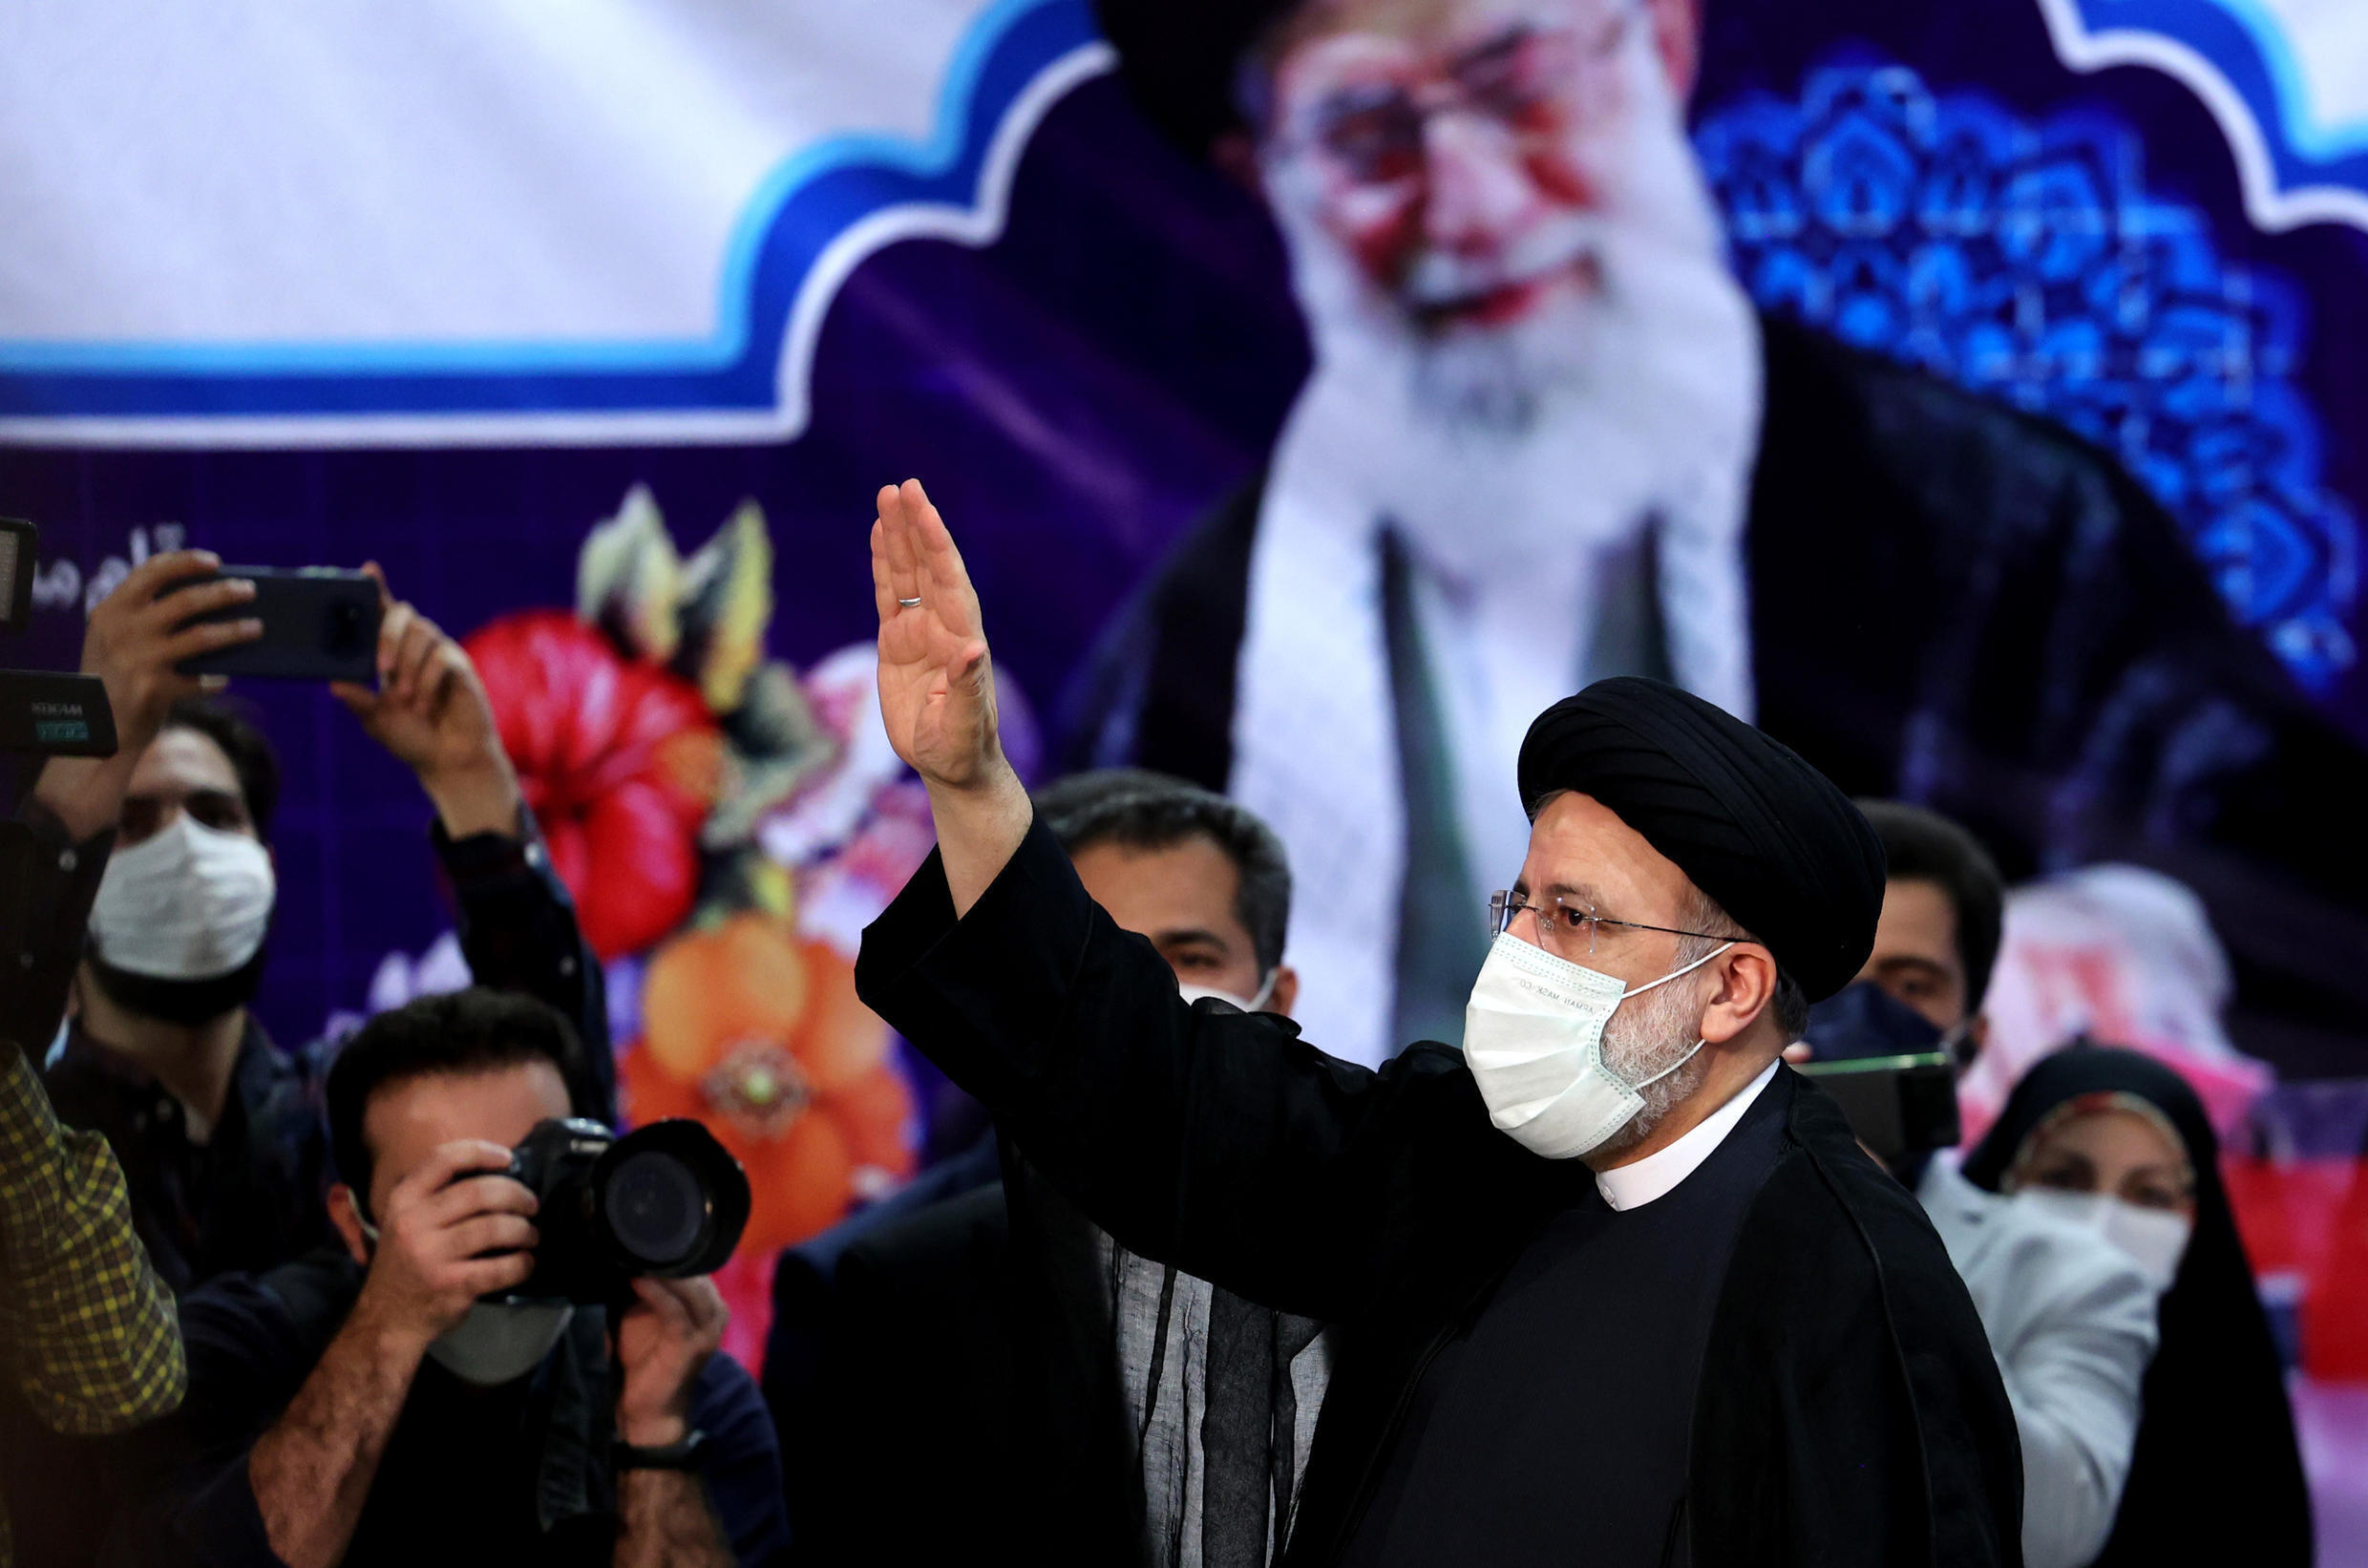 Iranian's ultraconservative judiciary chief Ebrahim Raisi was one of seven candidates approved for next month's election to replace moderate President Hassan Rouhani